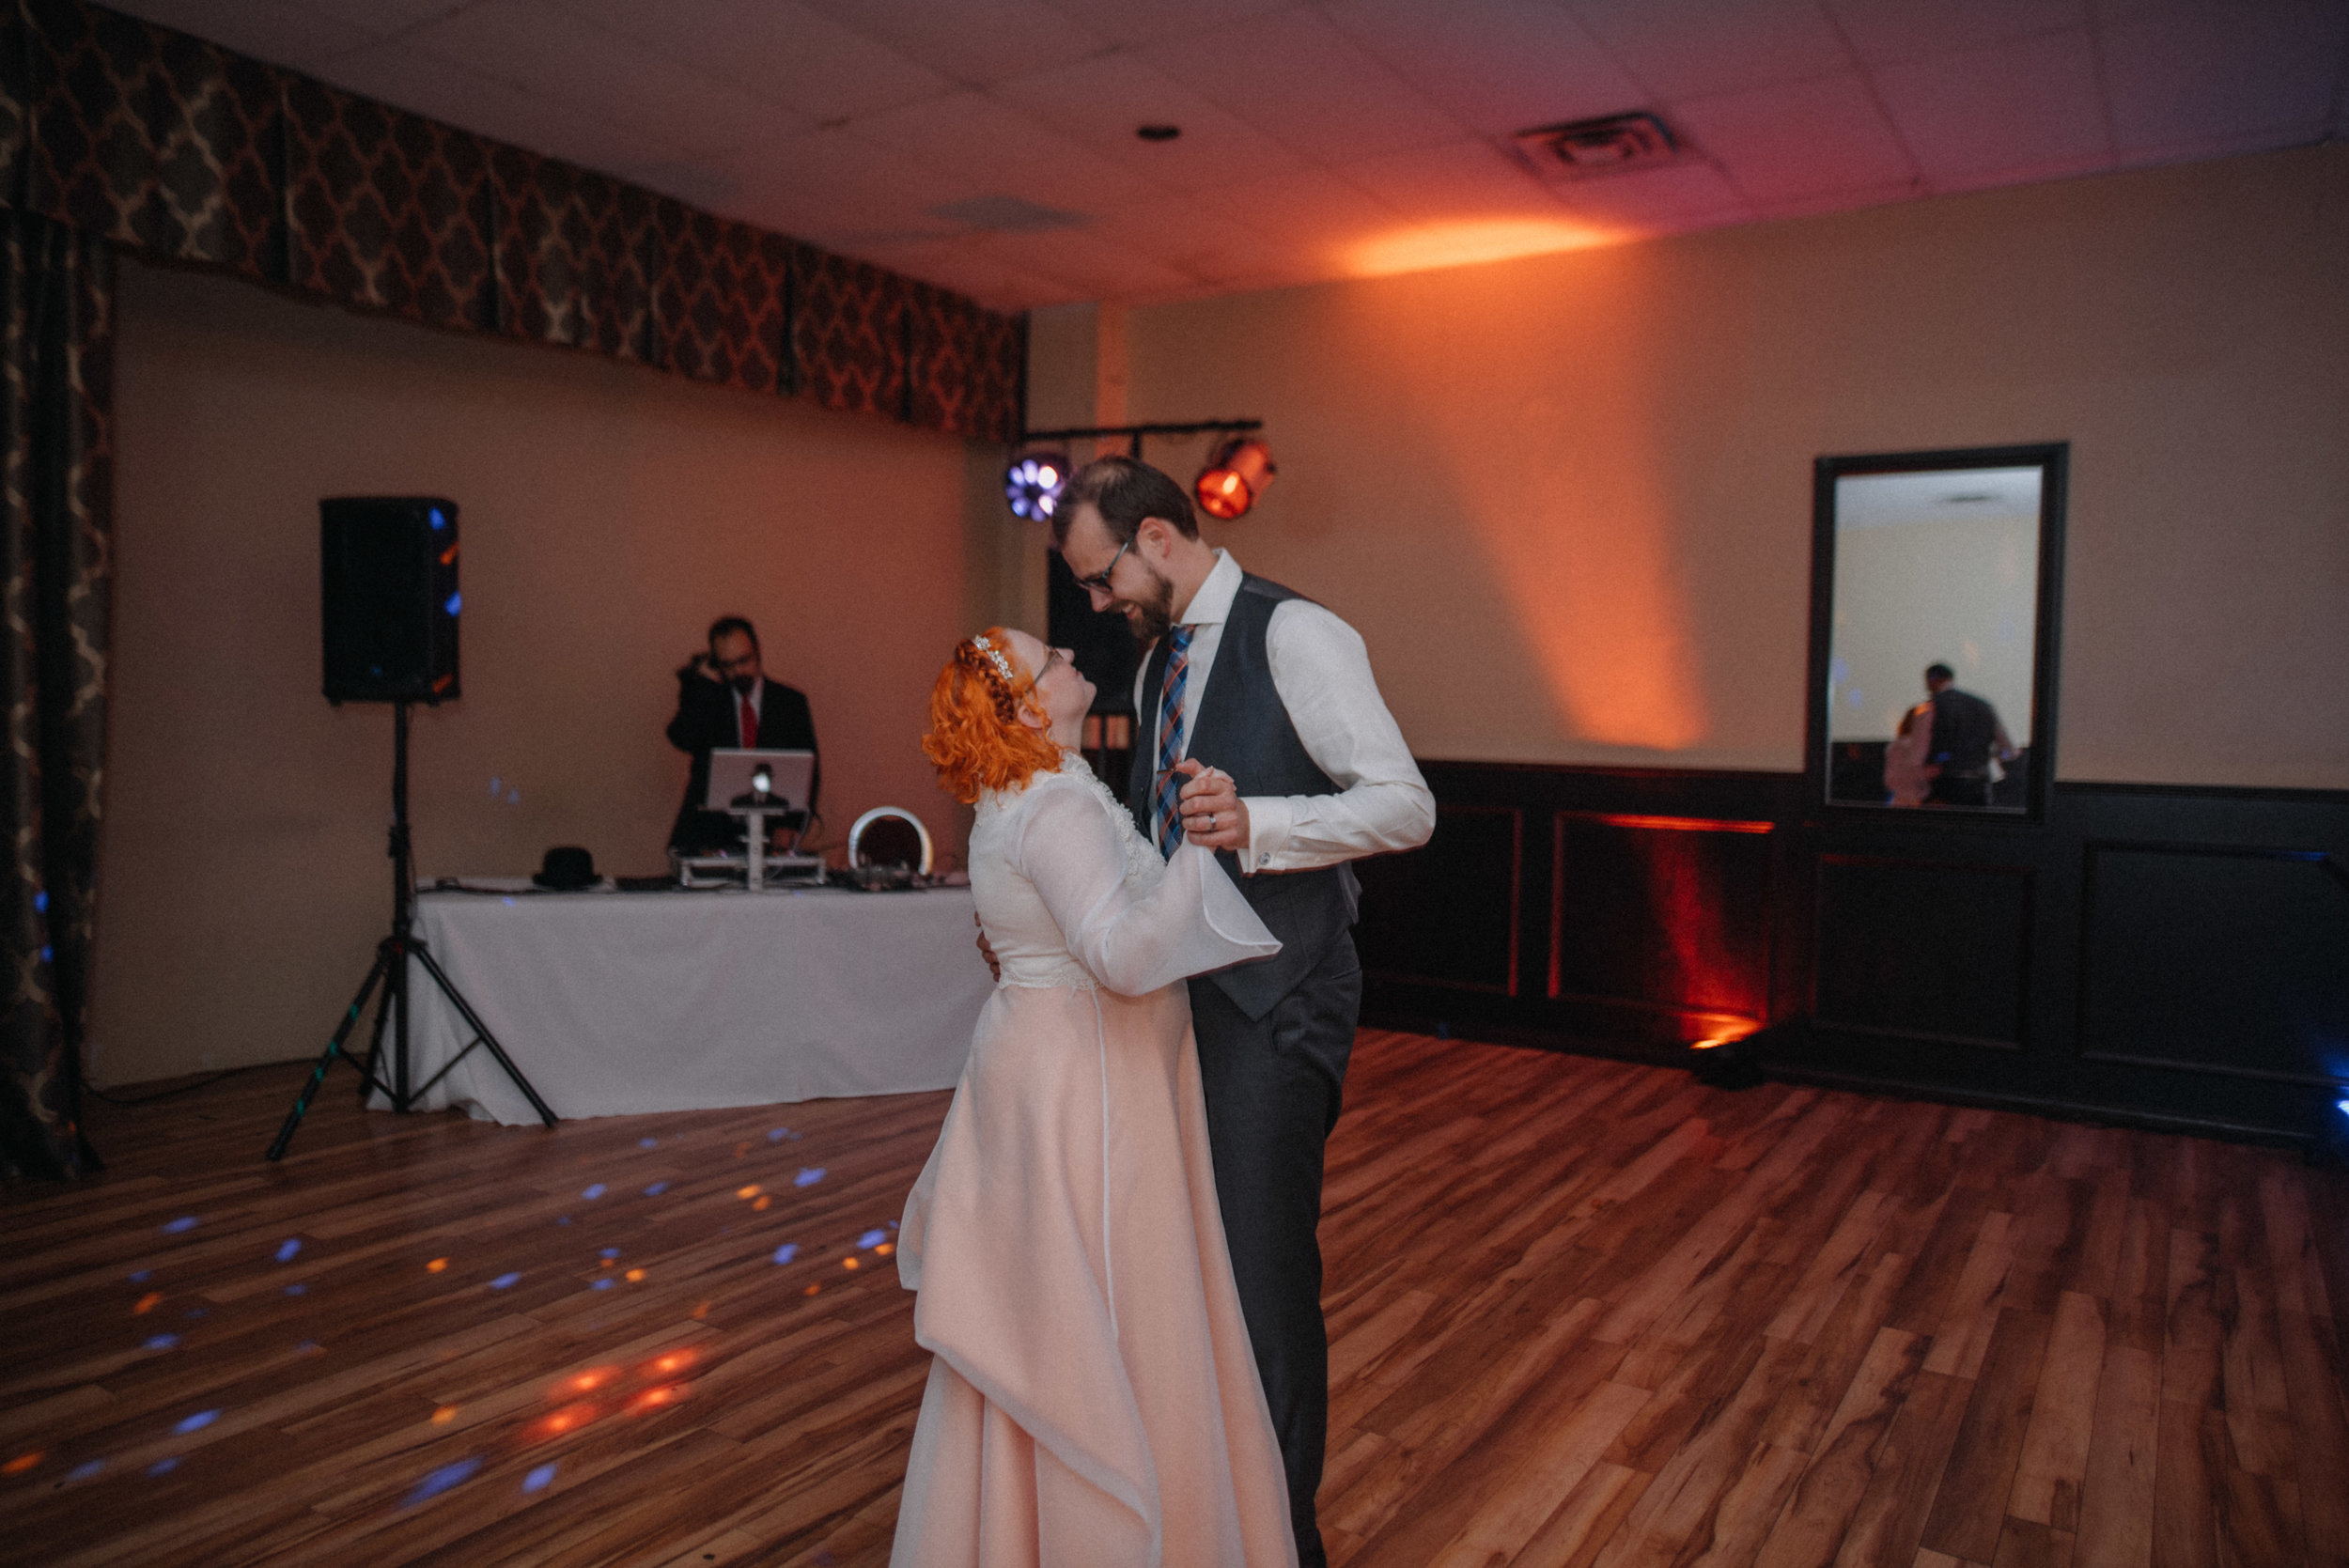 photographe_gatineau_mariage_ottawa_photographer_wedding_natasha_liard_photo_documentary_candid_lifestyle_intimate_intime (37).jpg